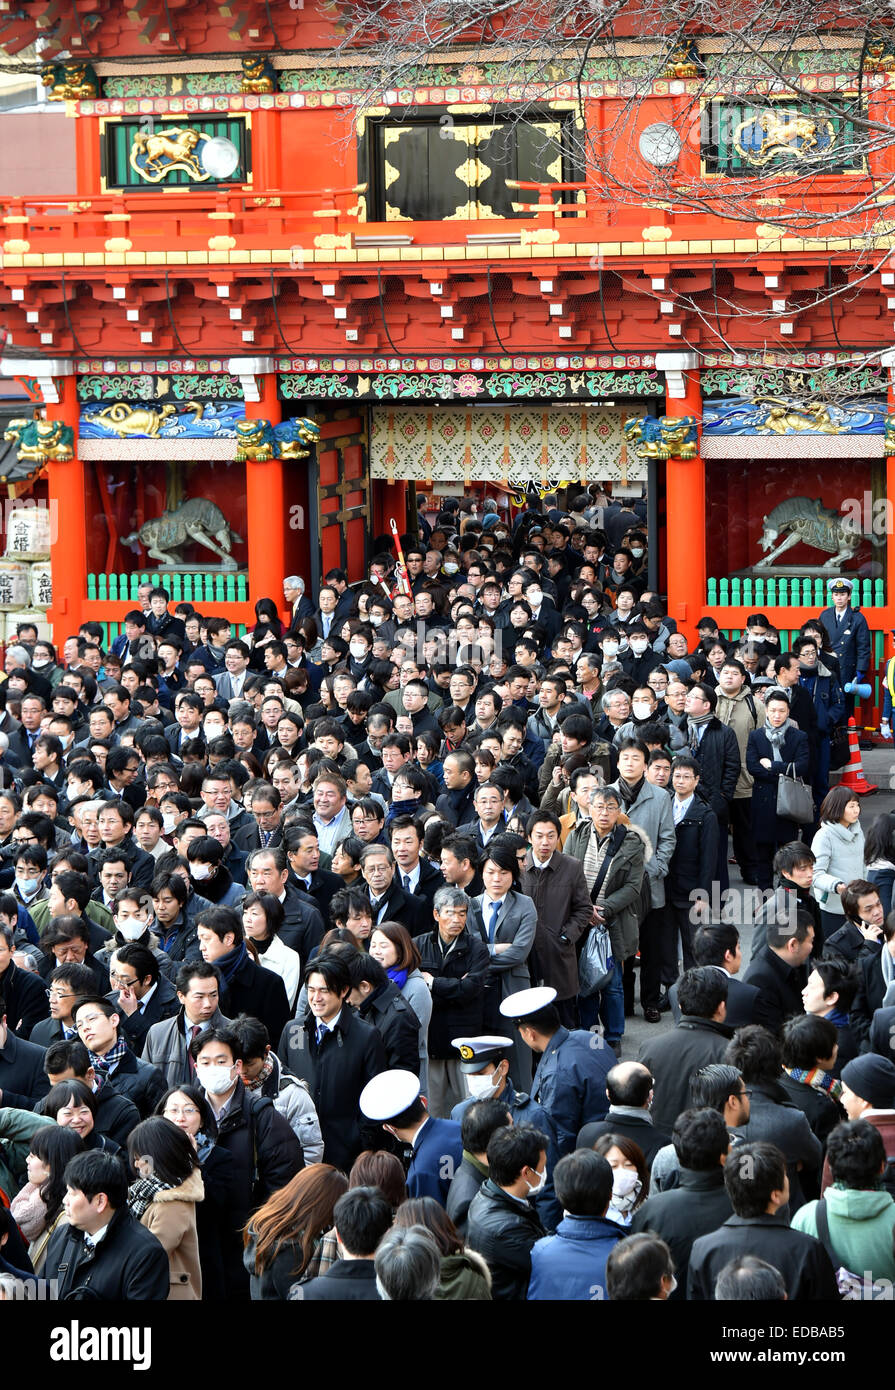 Tokyo, Japan. 5th Jan, 2015. A huge throng of businessmen and women prays for thriving businesses at Kandamyojin - Stock Image